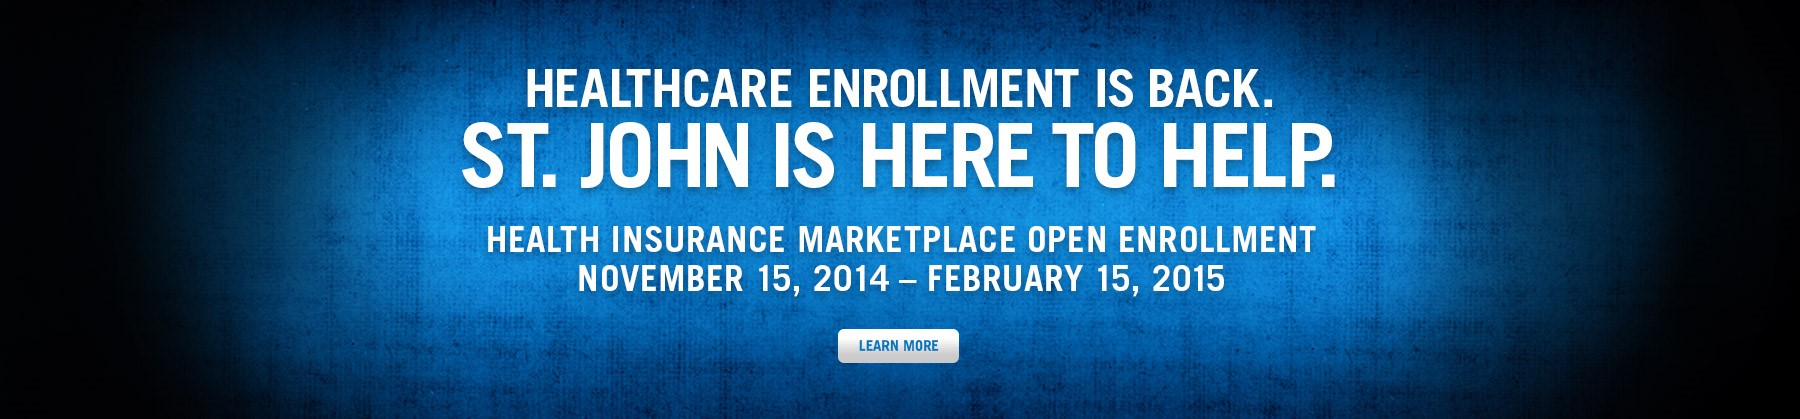 Healthcare Enrollment Is Back